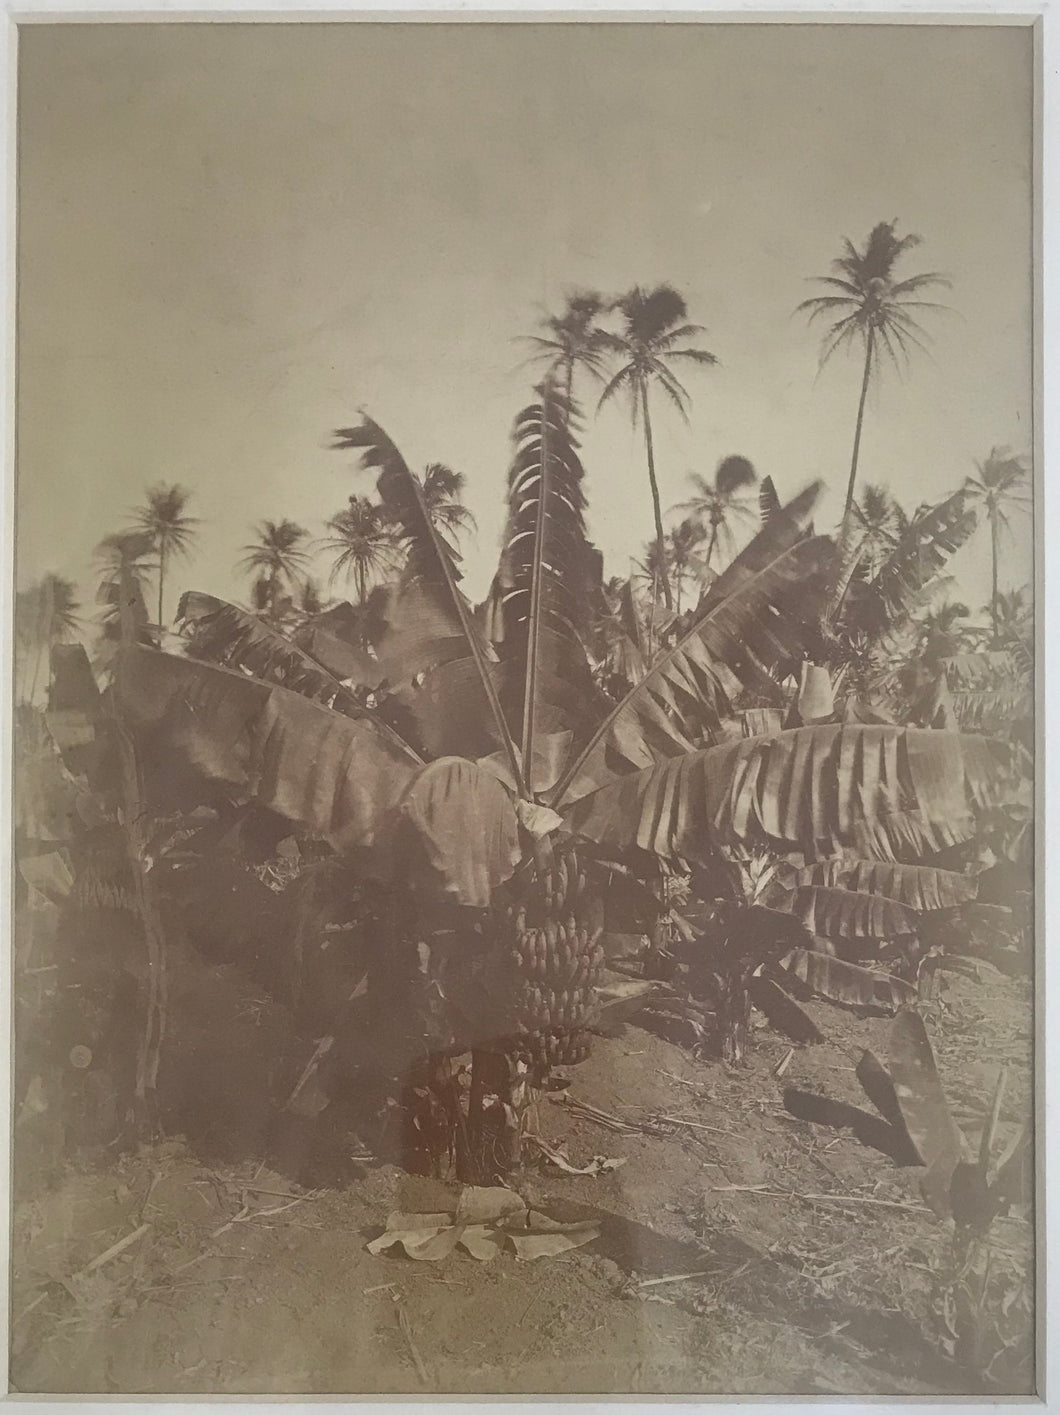 1885 Albumen Photo Of A Banana Tree In Hawaii